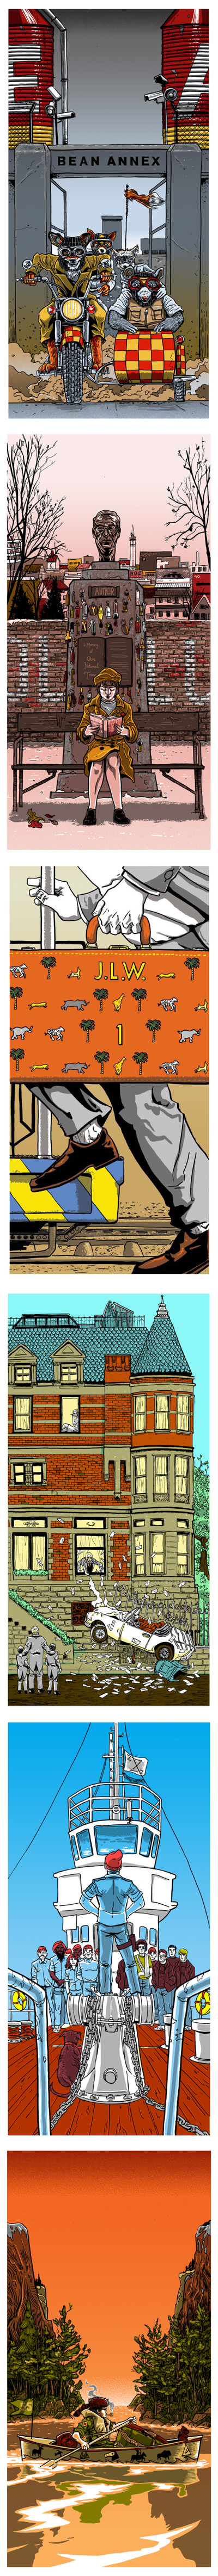 Prints inspired by scenes of Wes Anderson films, by artist Tim Doyle.